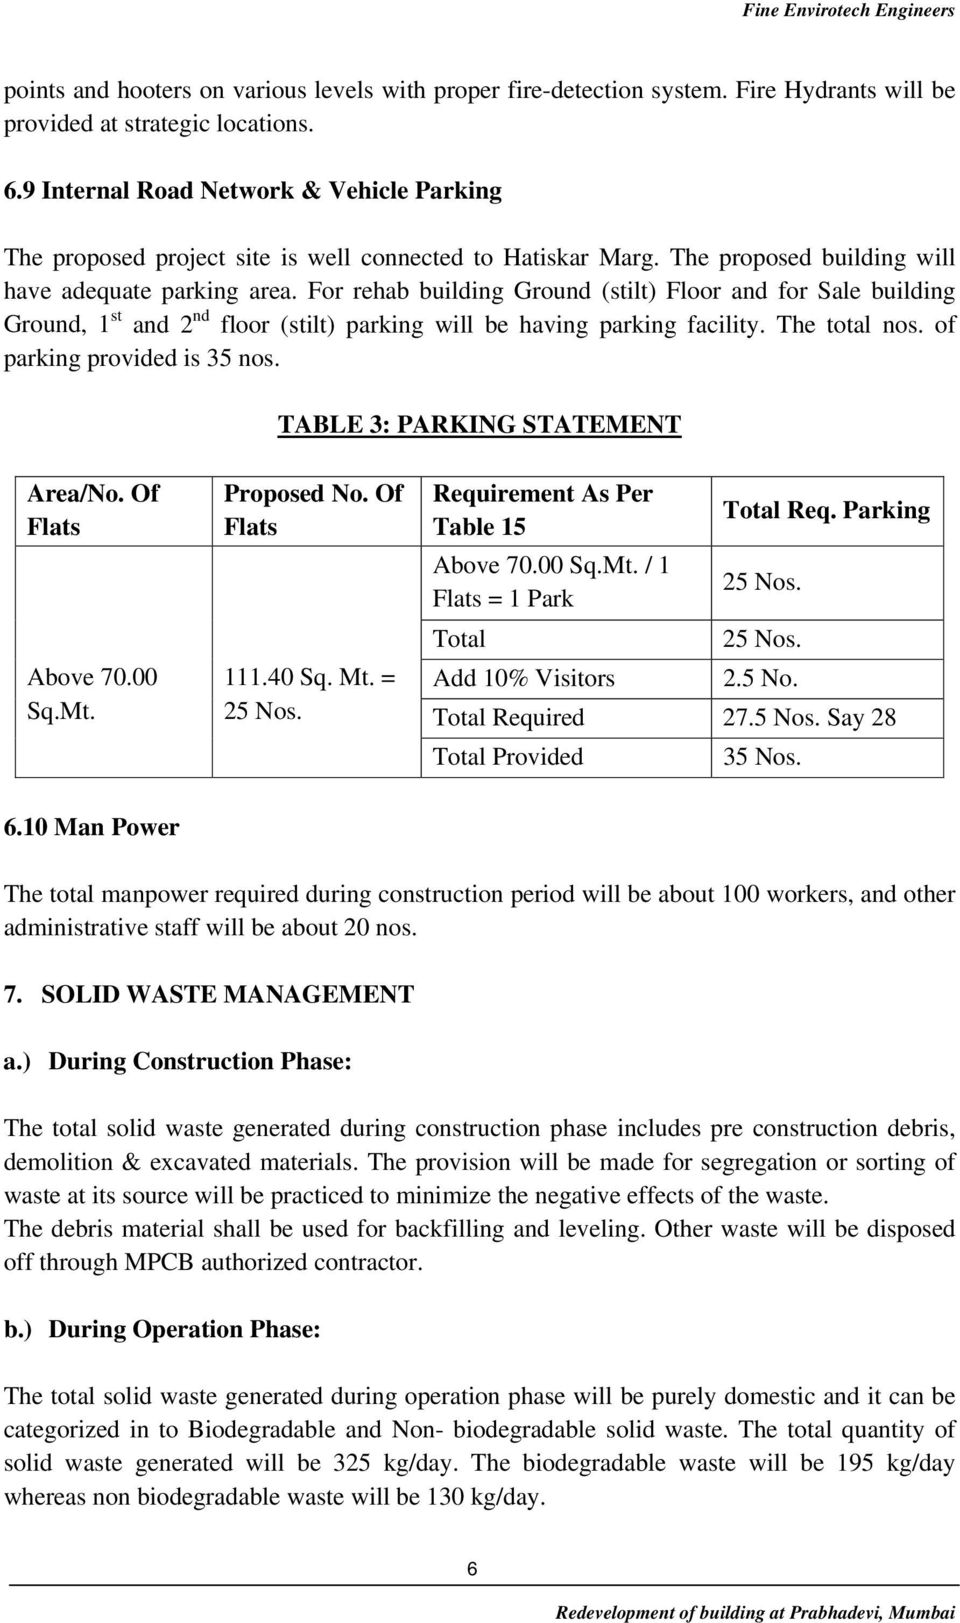 For rehab building Ground (stilt) Floor and for Sale building Ground, 1 st and 2 nd floor (stilt) parking will be having parking facility. The total nos. of parking provided is 35 nos.